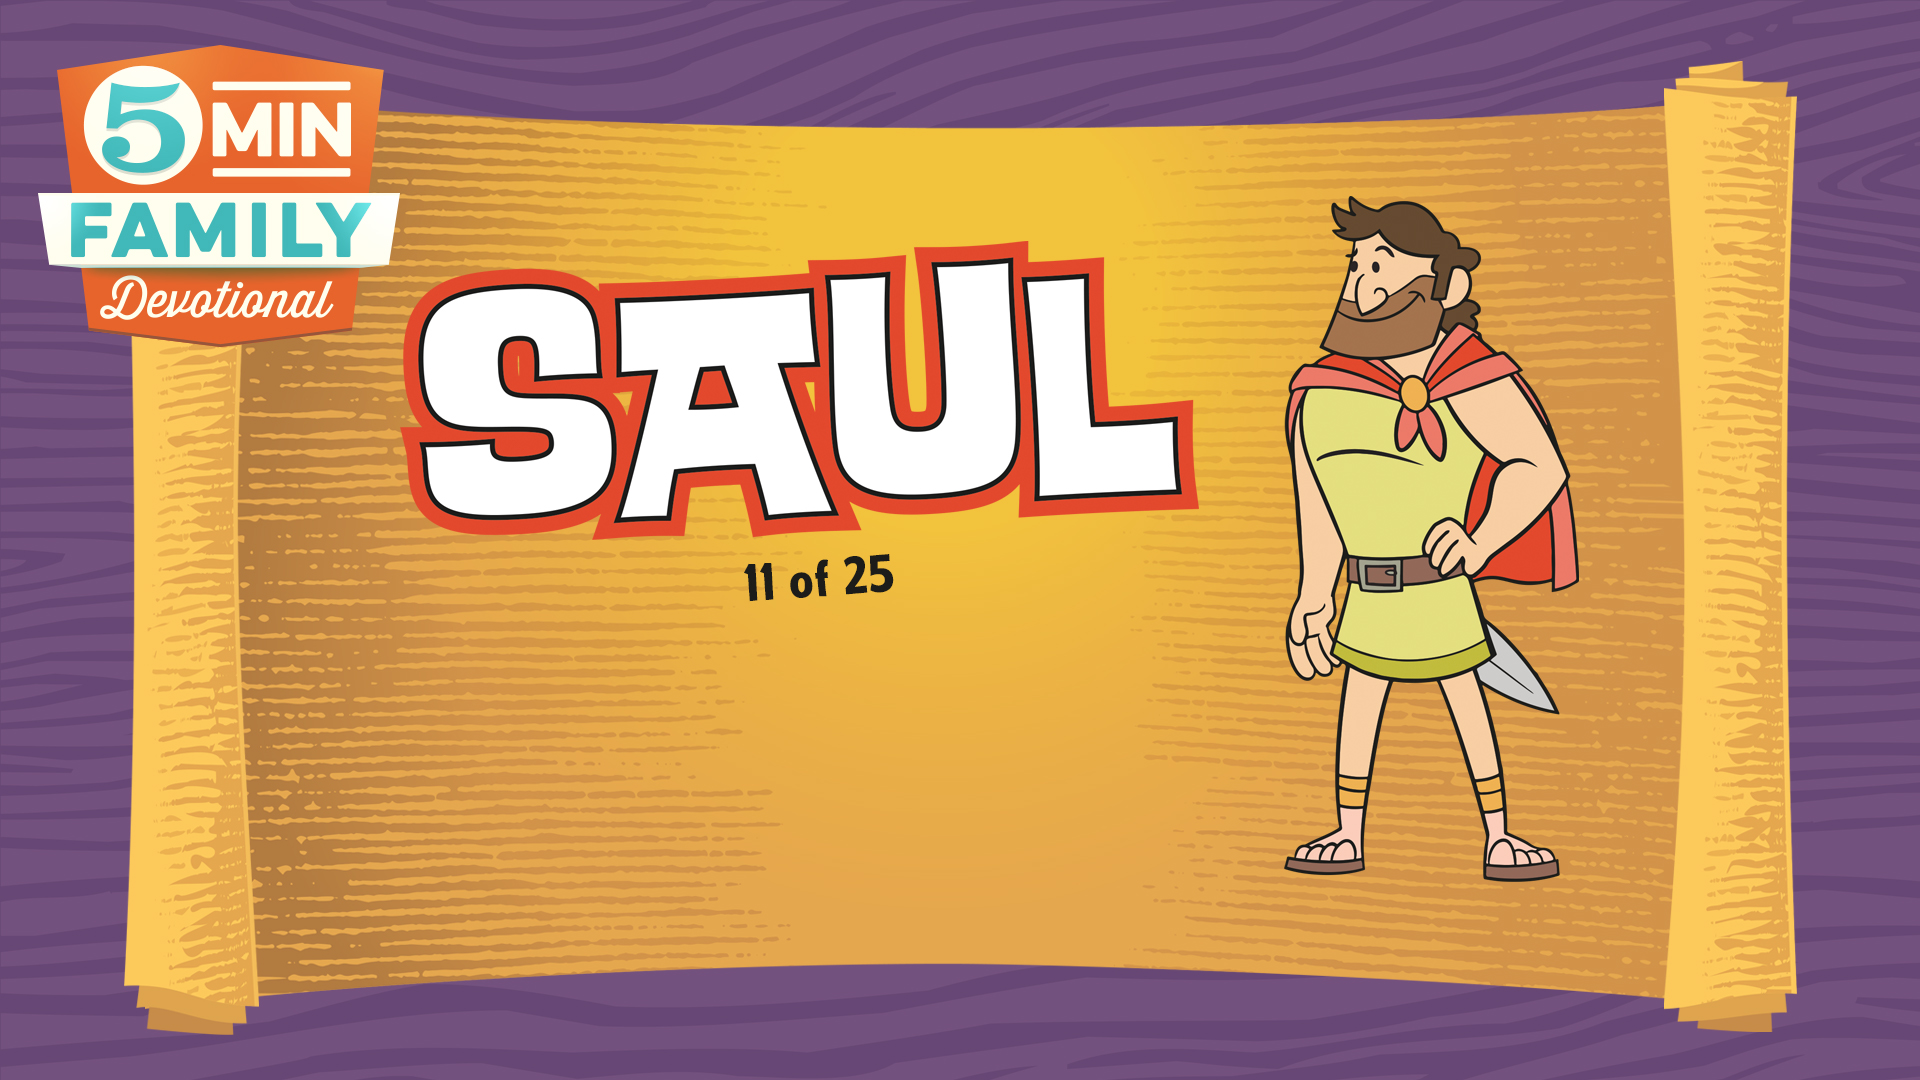 Saul god rejected him as king